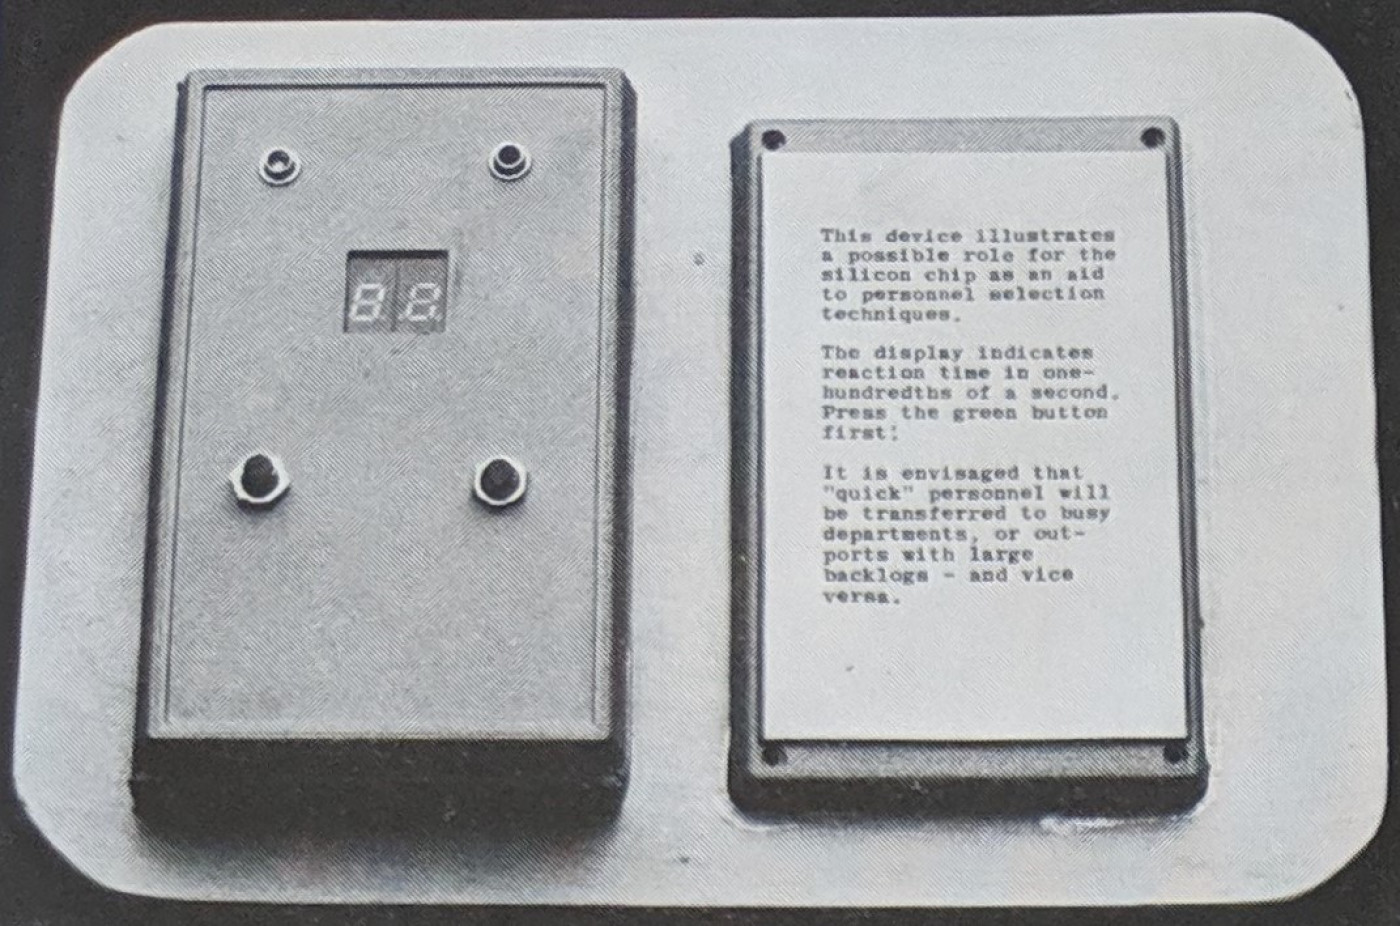 Exhibit from the 1980 exhibition